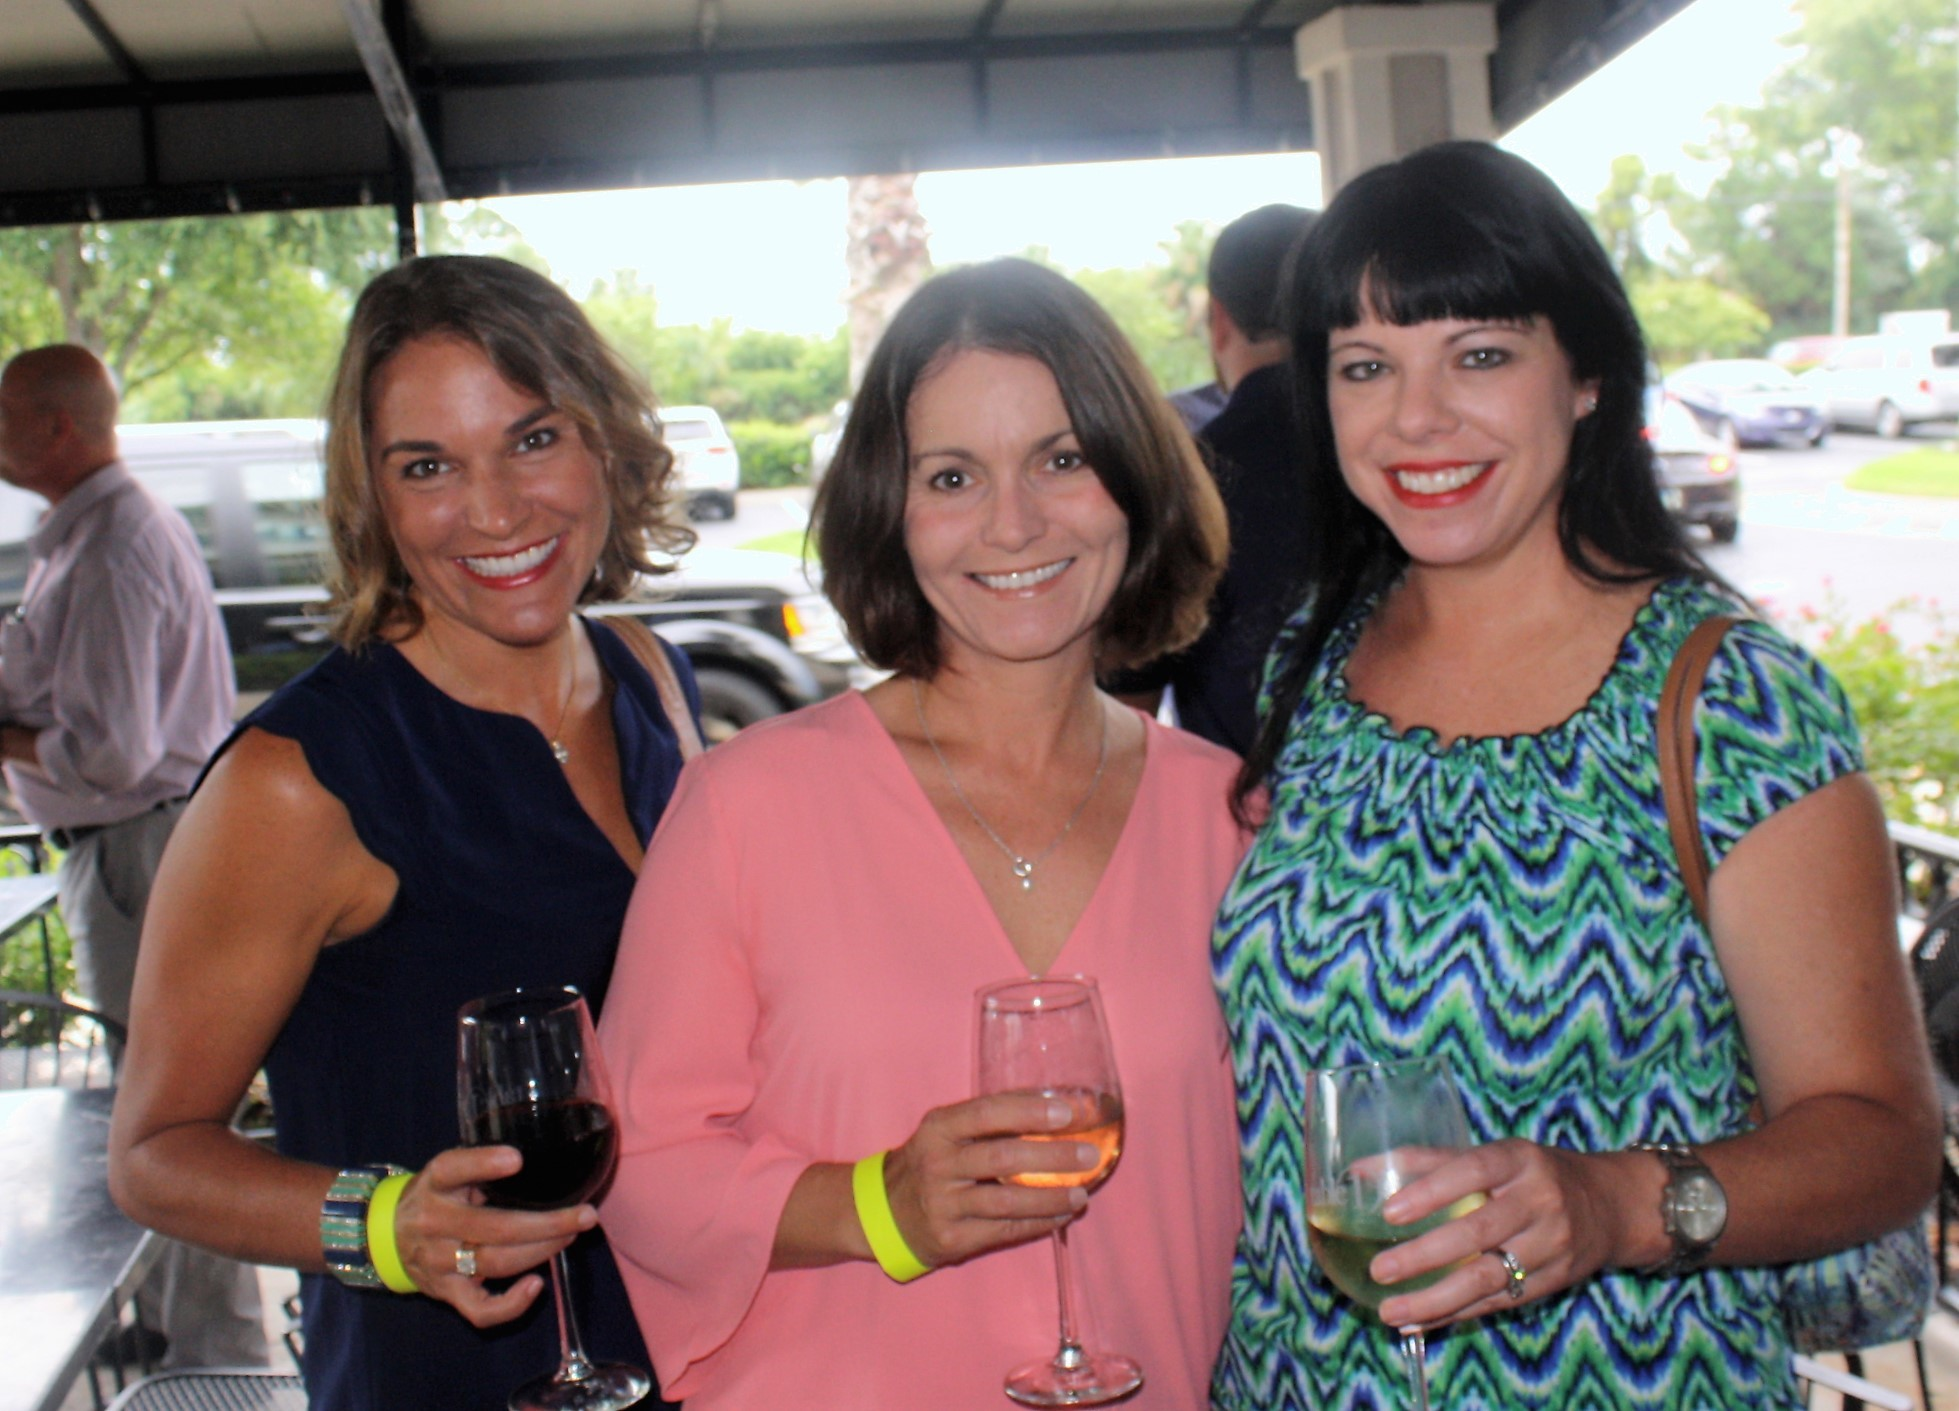 Jennie Rogers, Amy Bonanno and Danielle Woodring